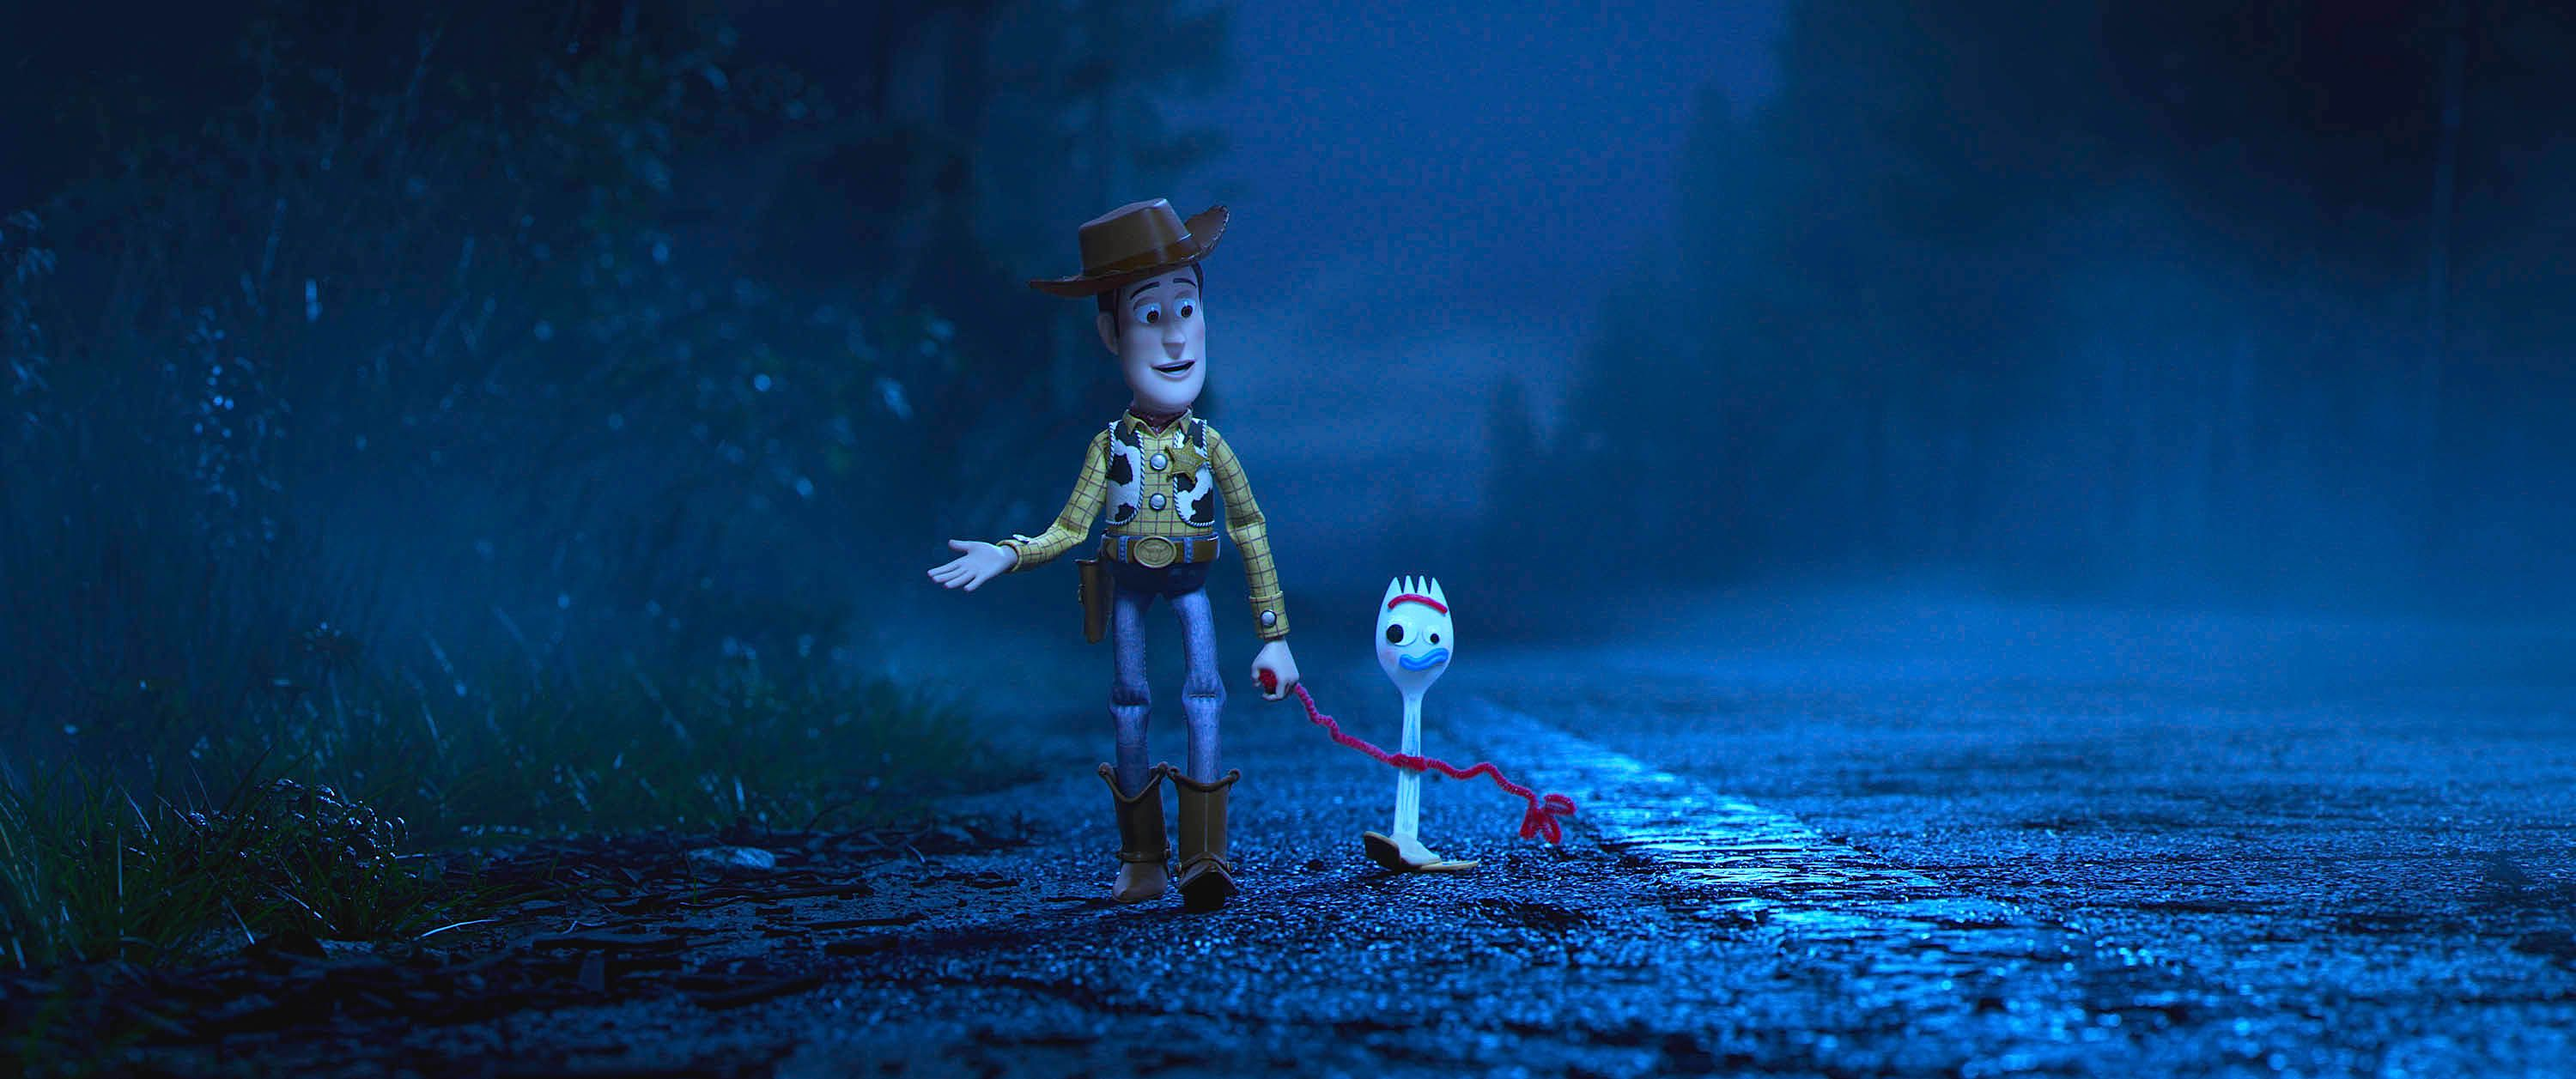 Toy Story 4 Elegantly Captures the Existential Terror of Being Alive